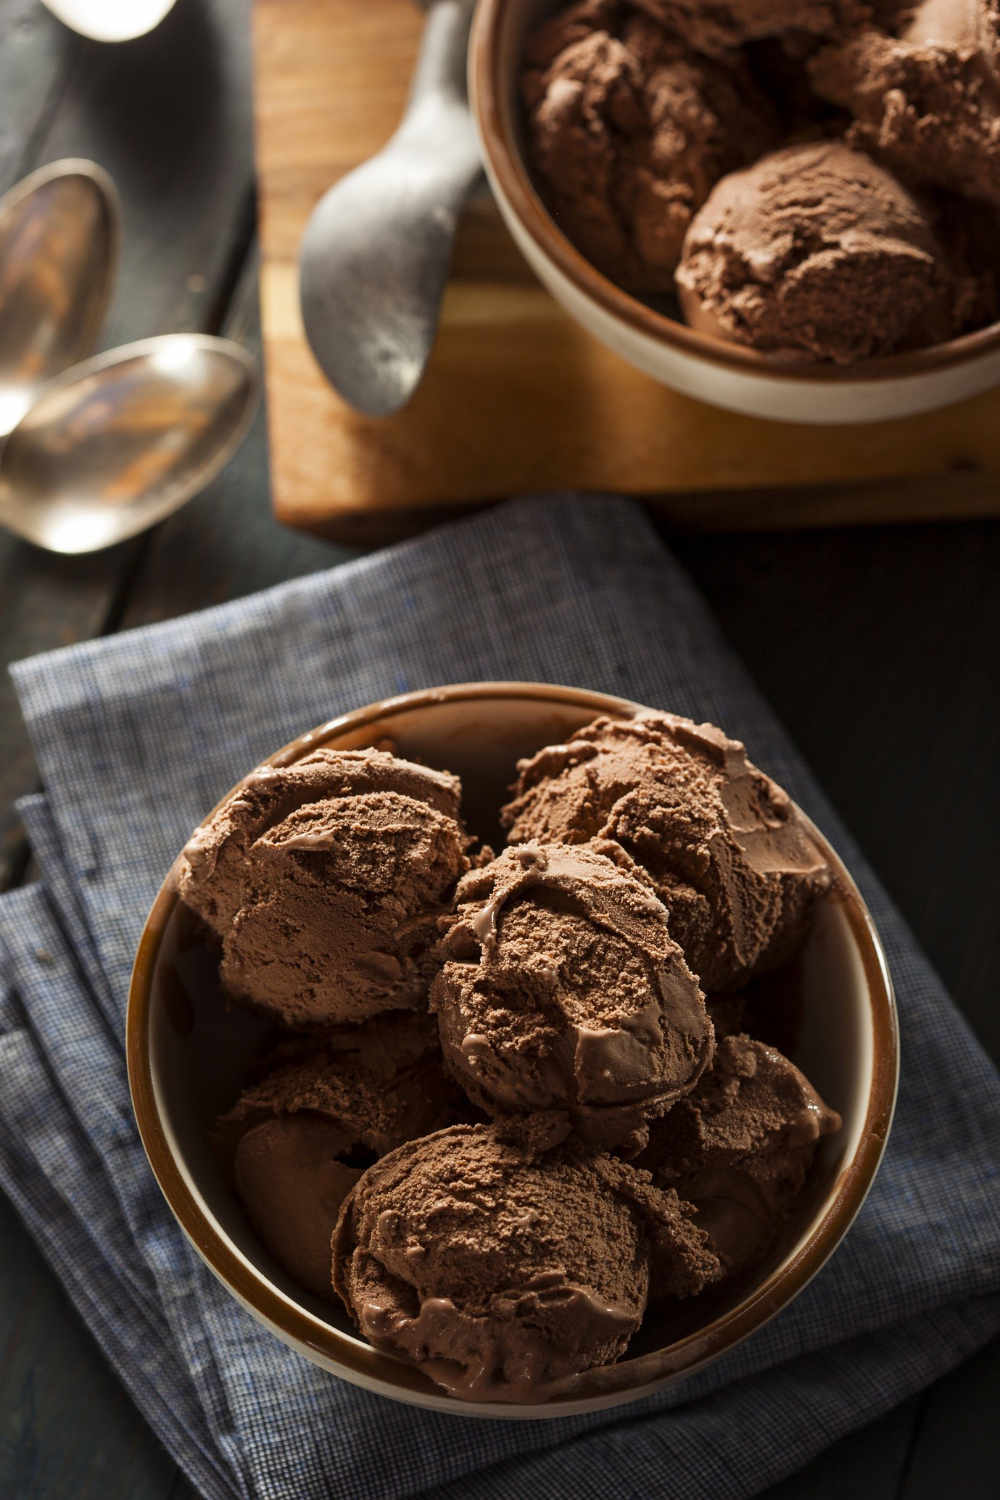 chocolate ice cream.jpg